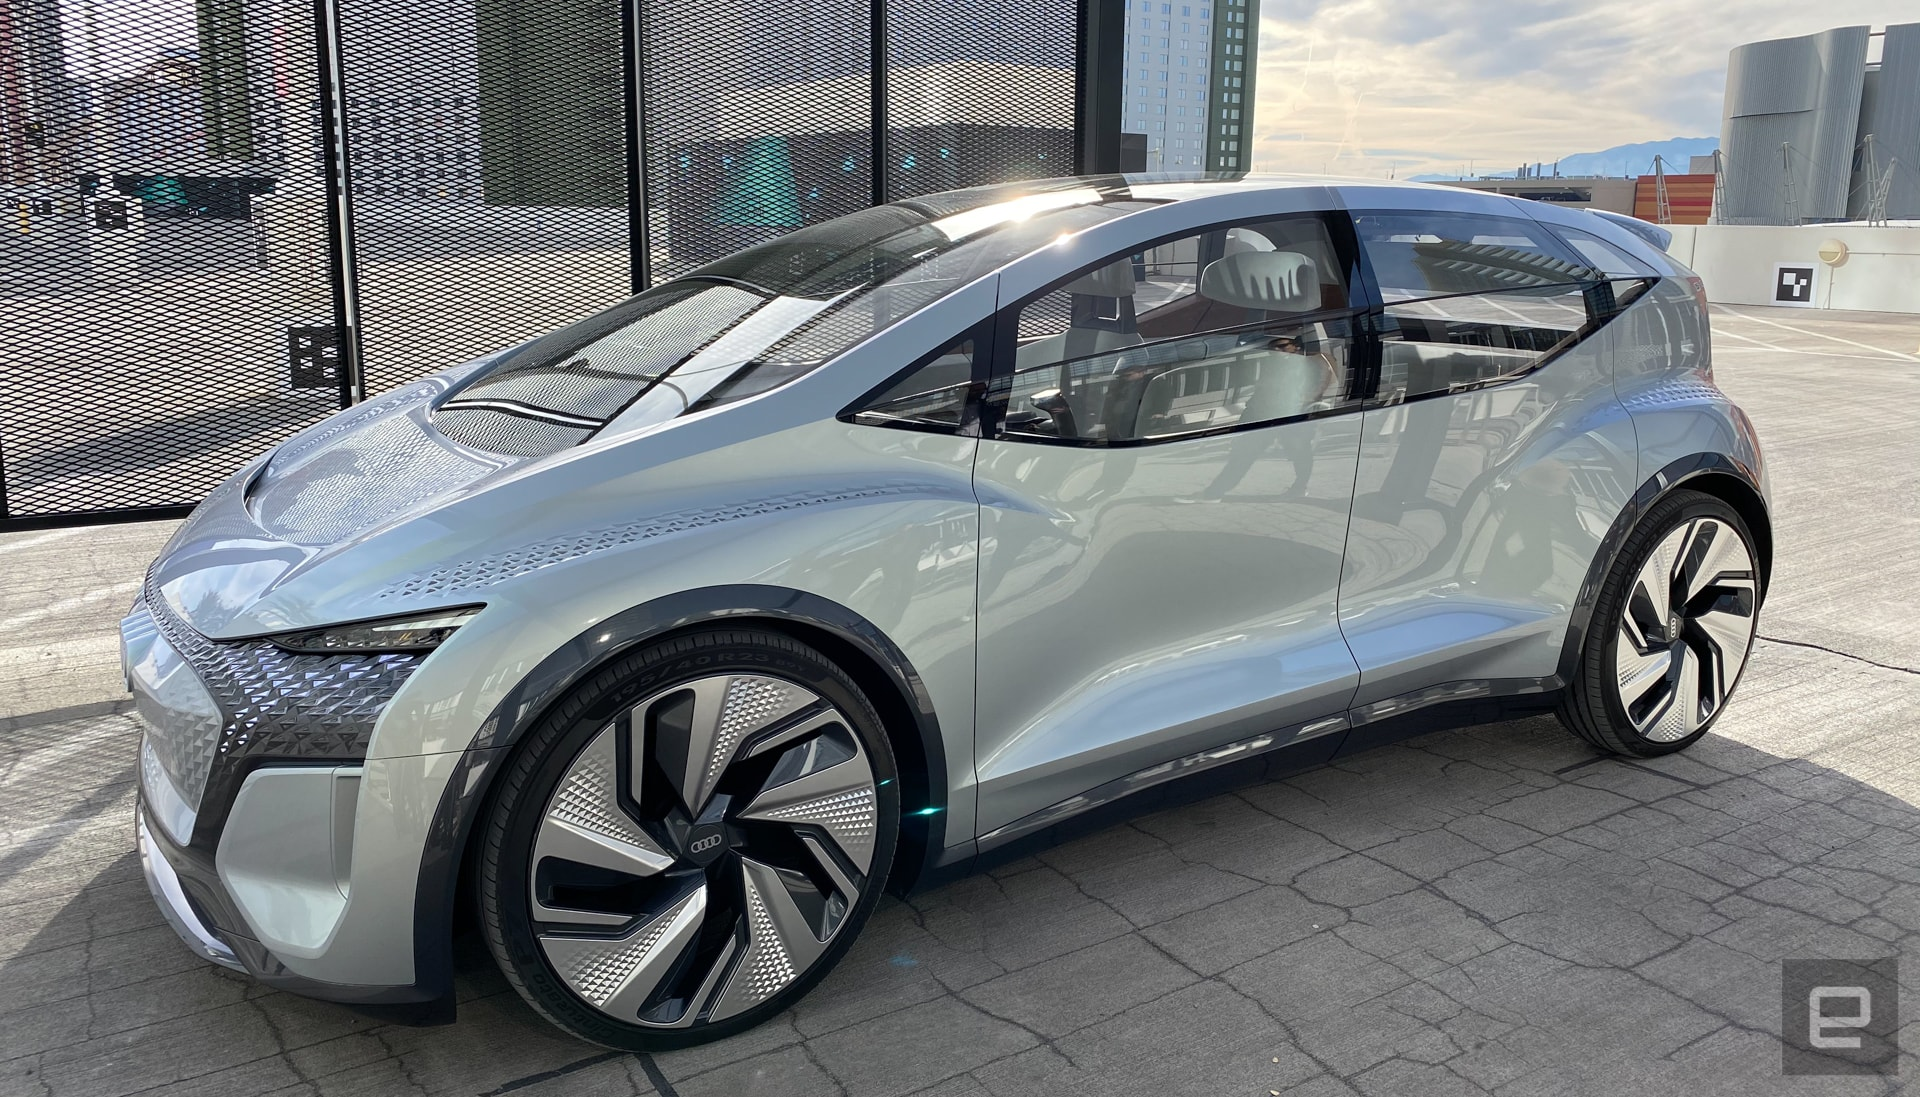 All the cars of CES 2020